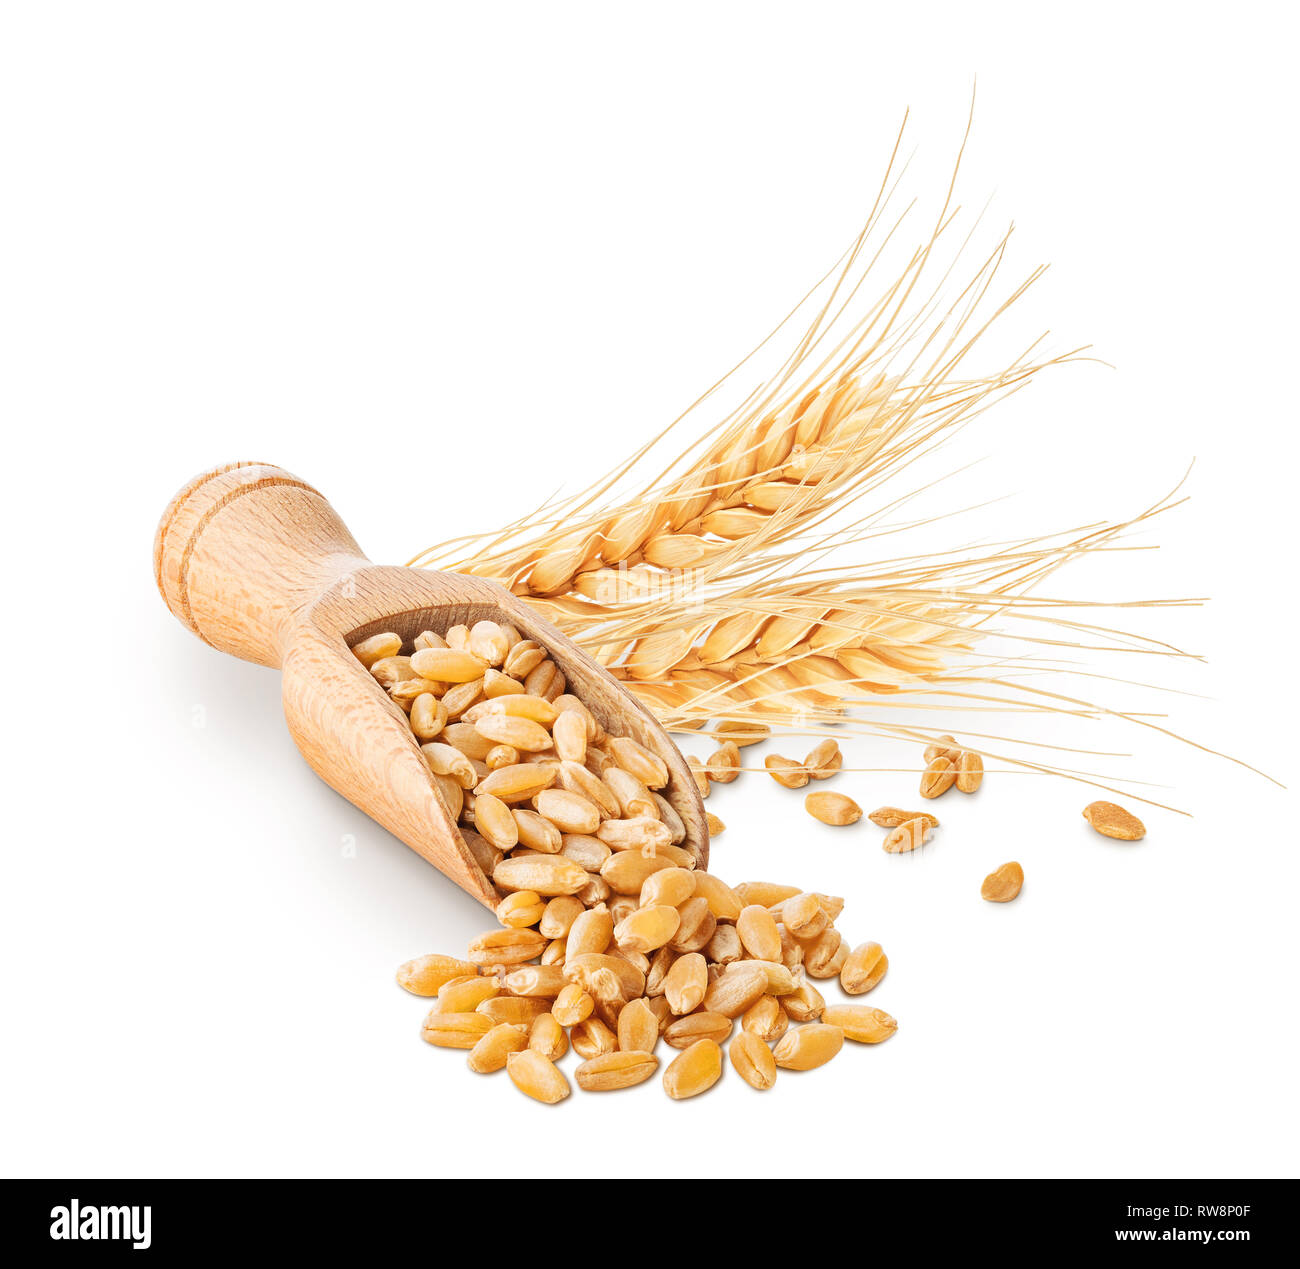 Wheat grains and ears isolated on white Stock Photo